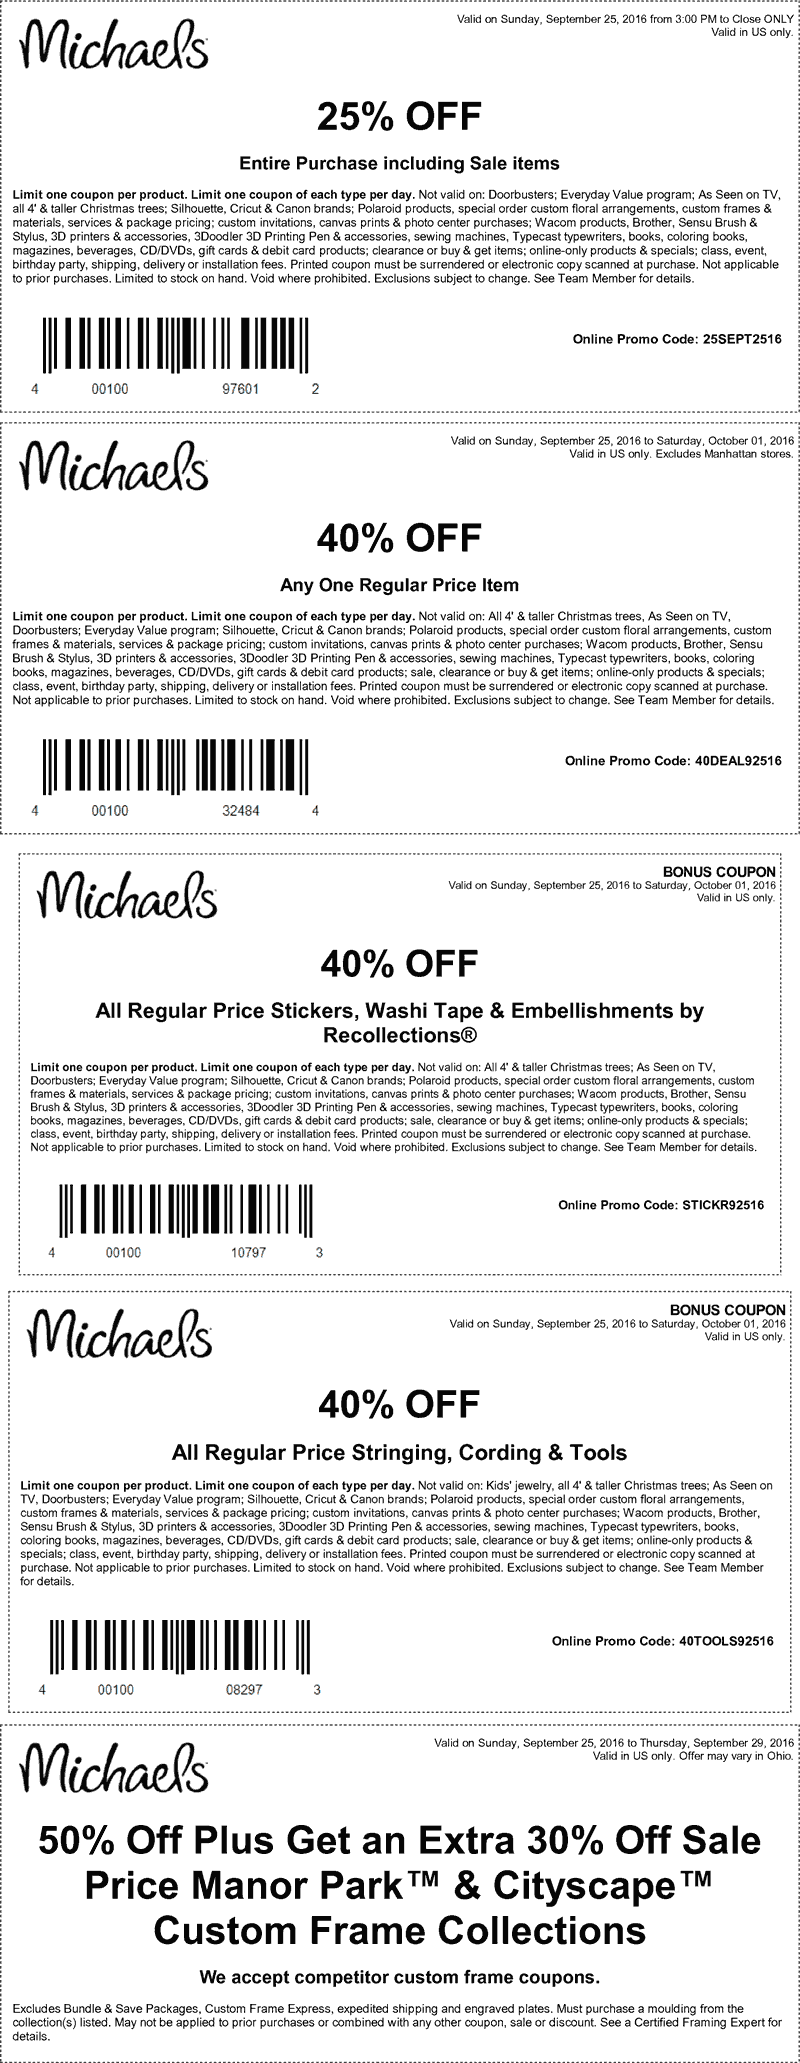 Michaels.com Promo Coupon 40% off a single item & more at Michaels, or online via promo code 40DEAL92516